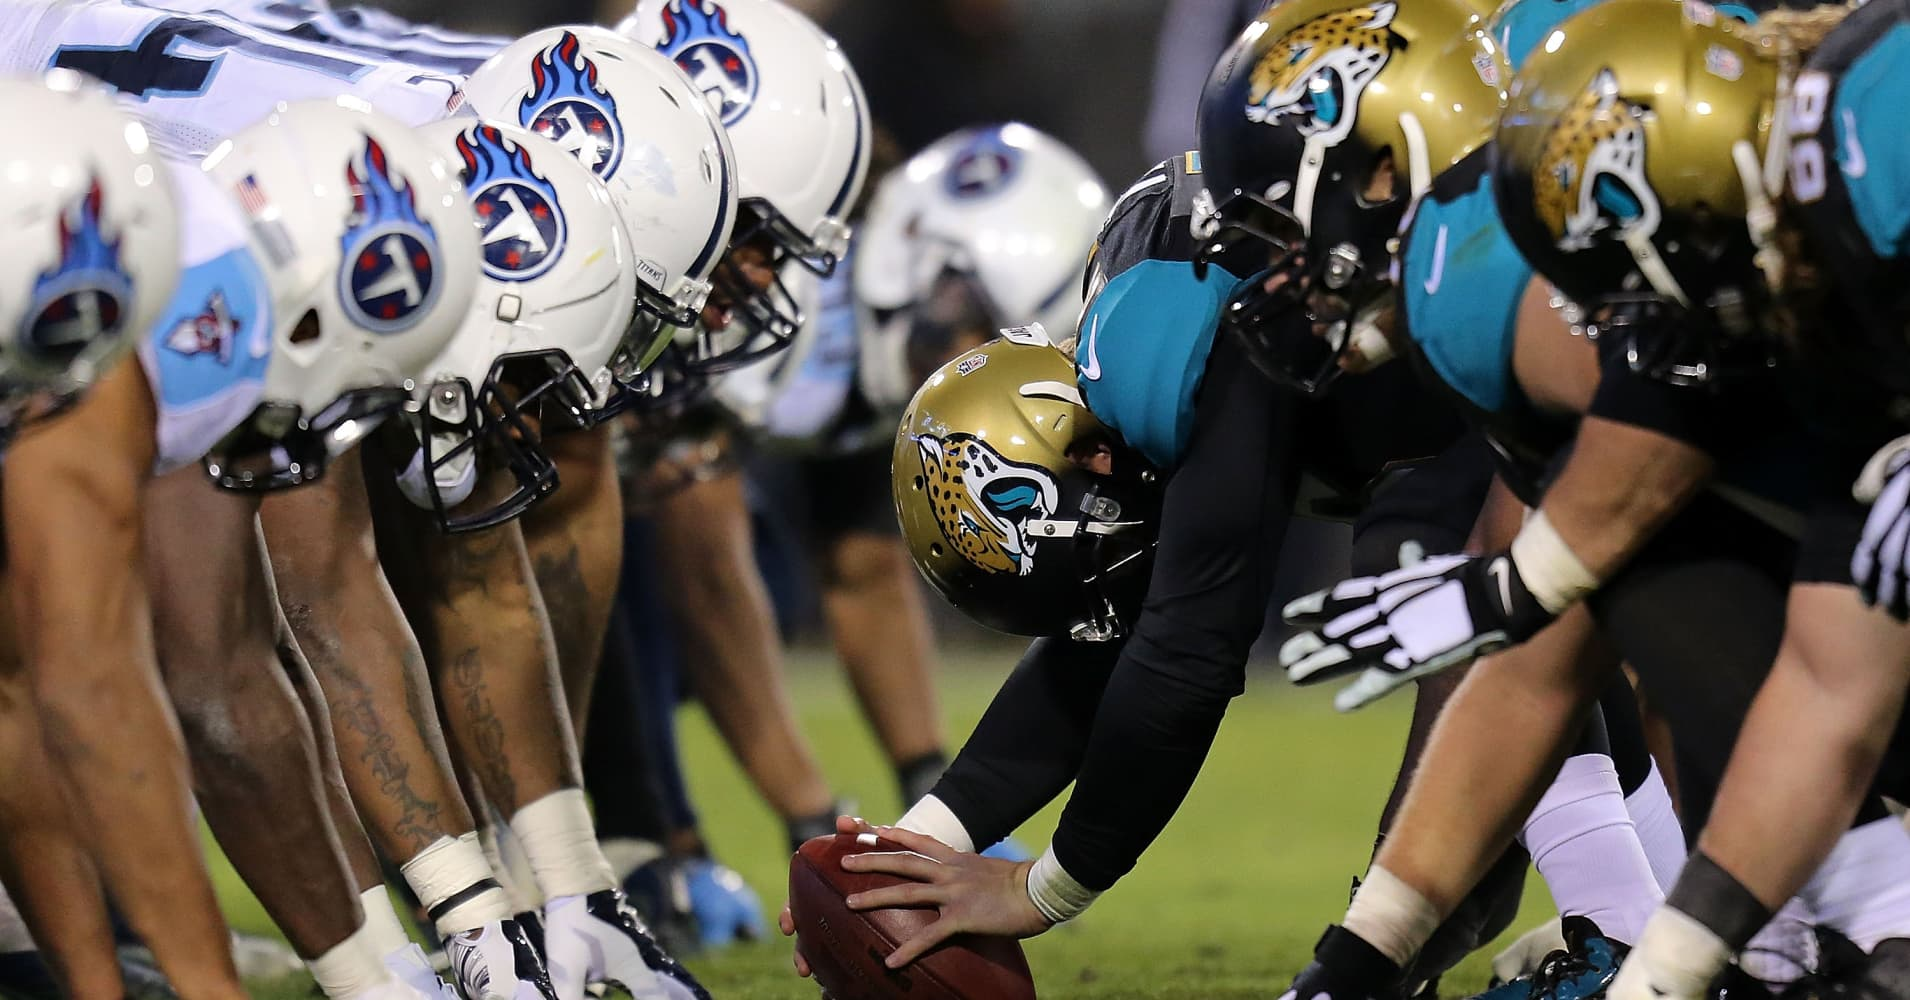 The Tennessee Titans play the Jacksonville Jaguars in December 2014.